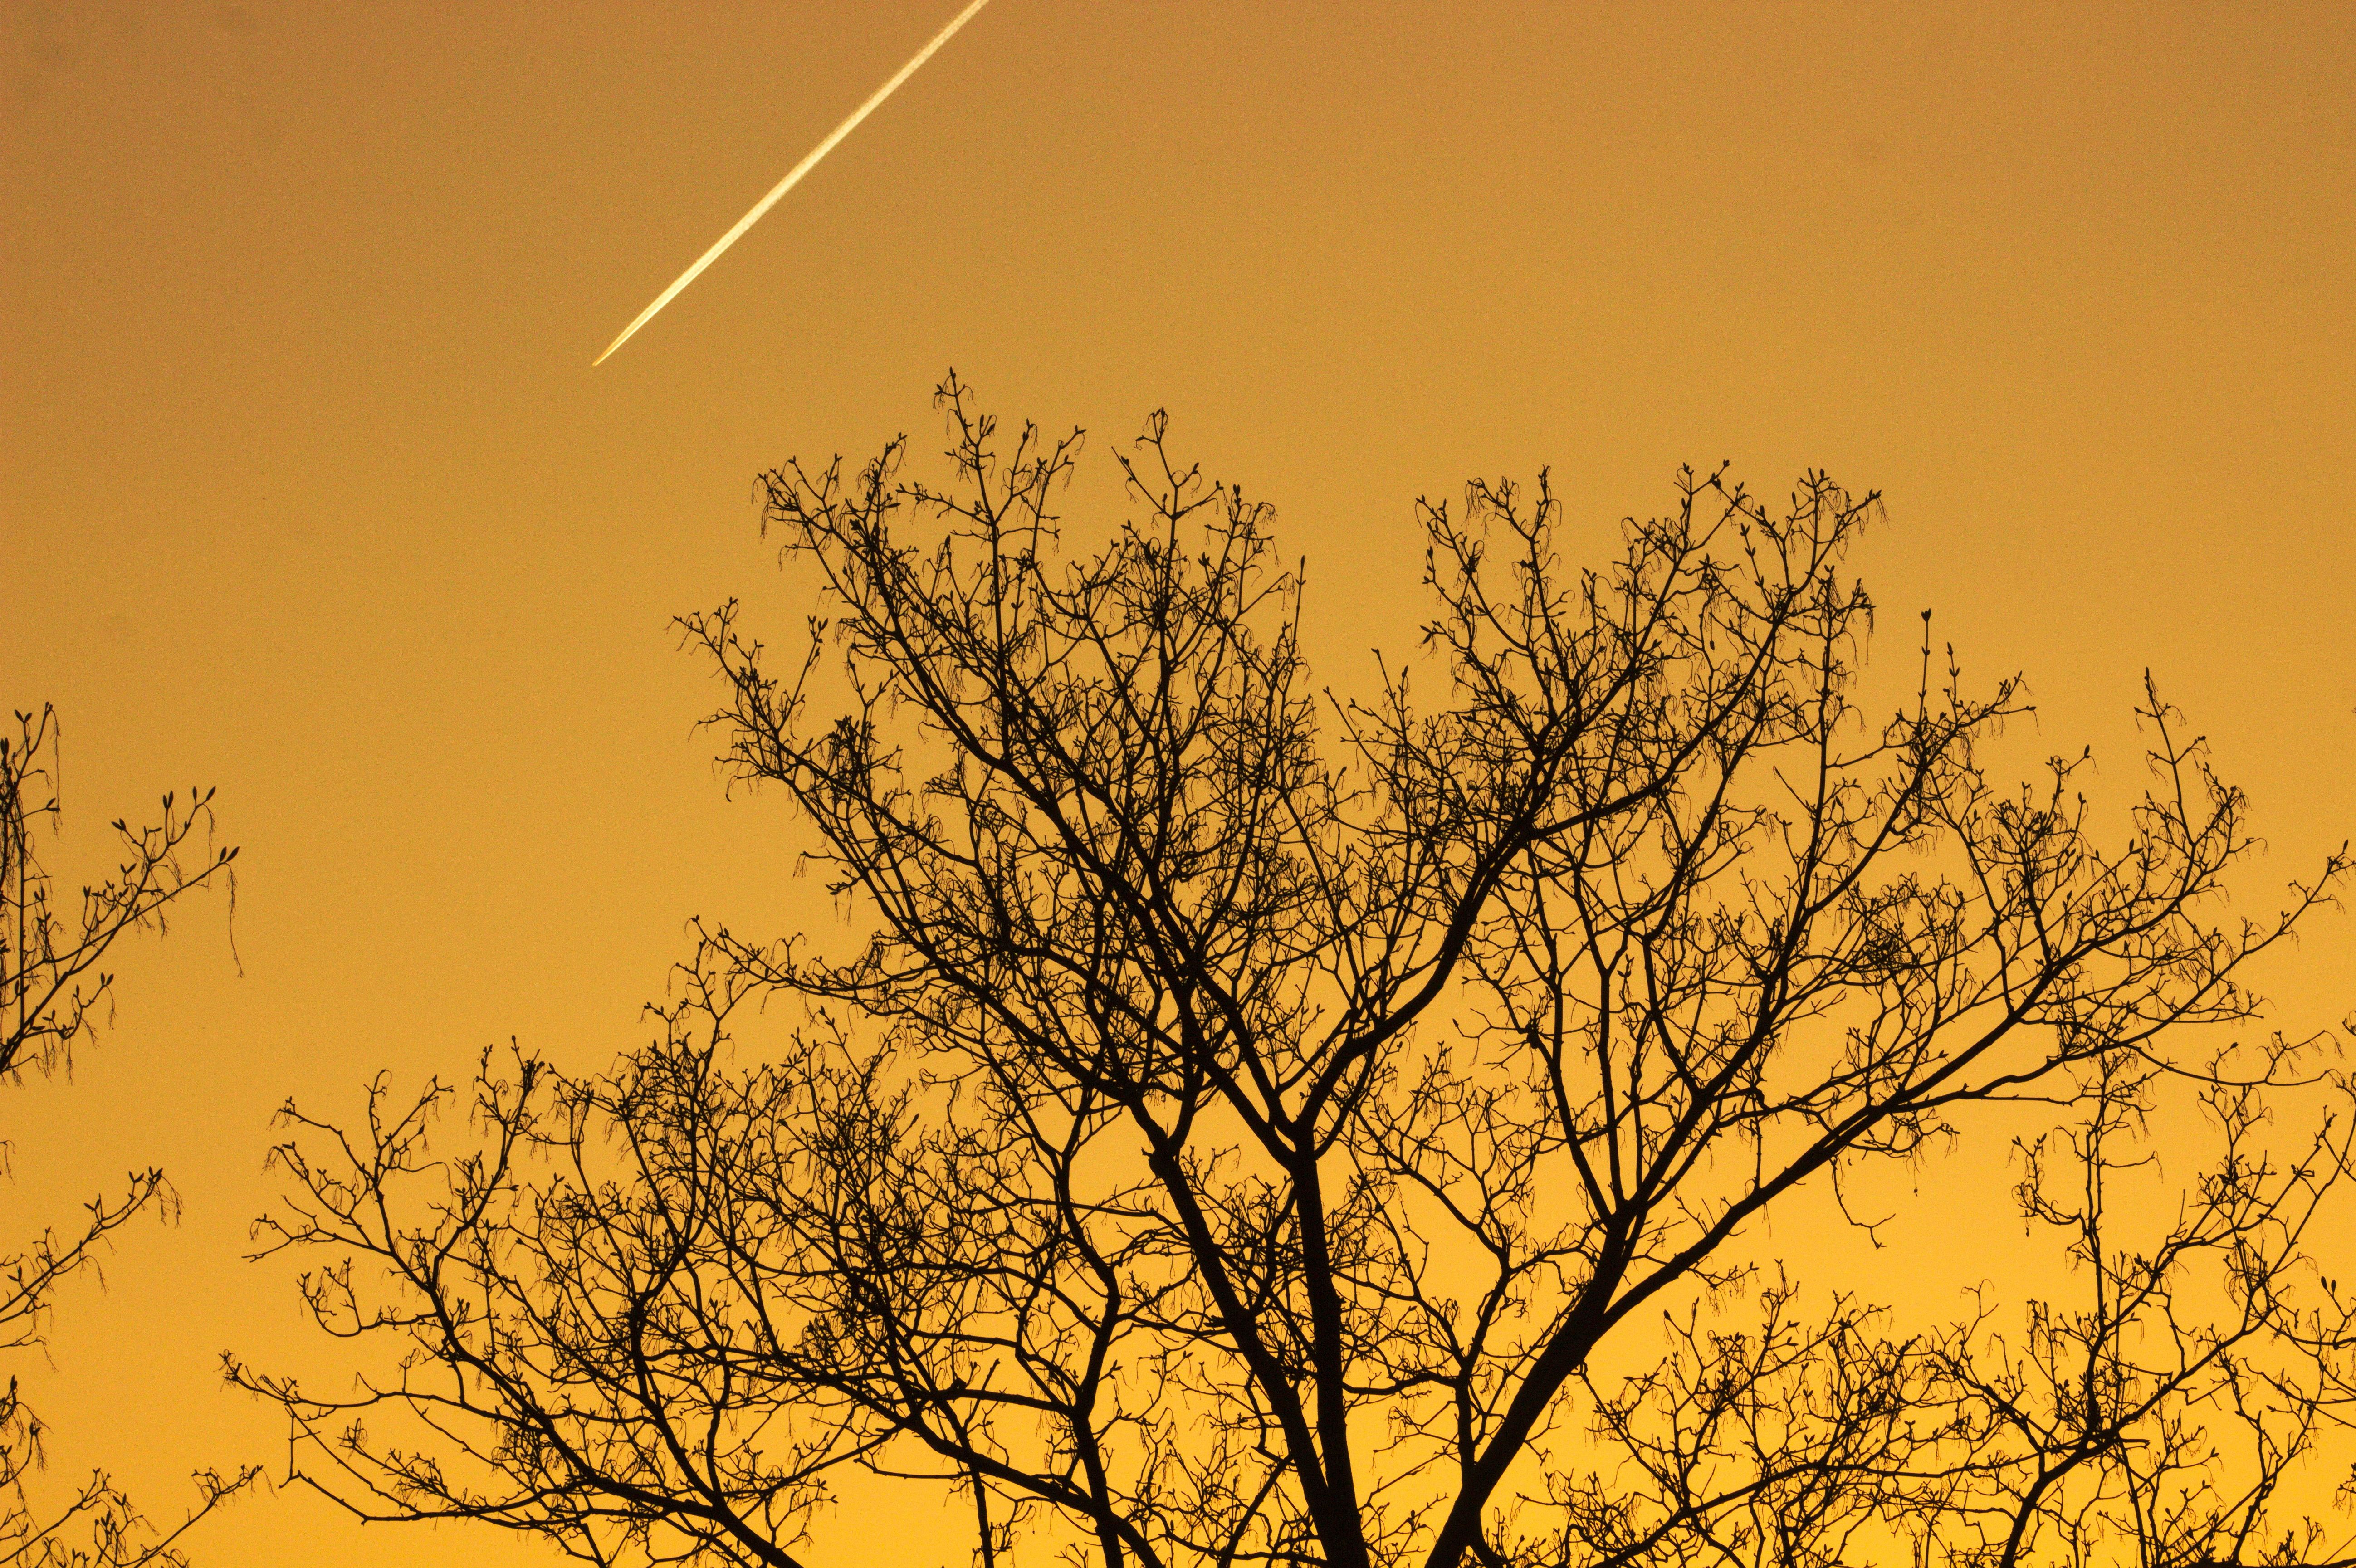 Trees against Sunset Sky, Emser Strasse, Wilmersdorf, Sky, Tree, HQ Photo